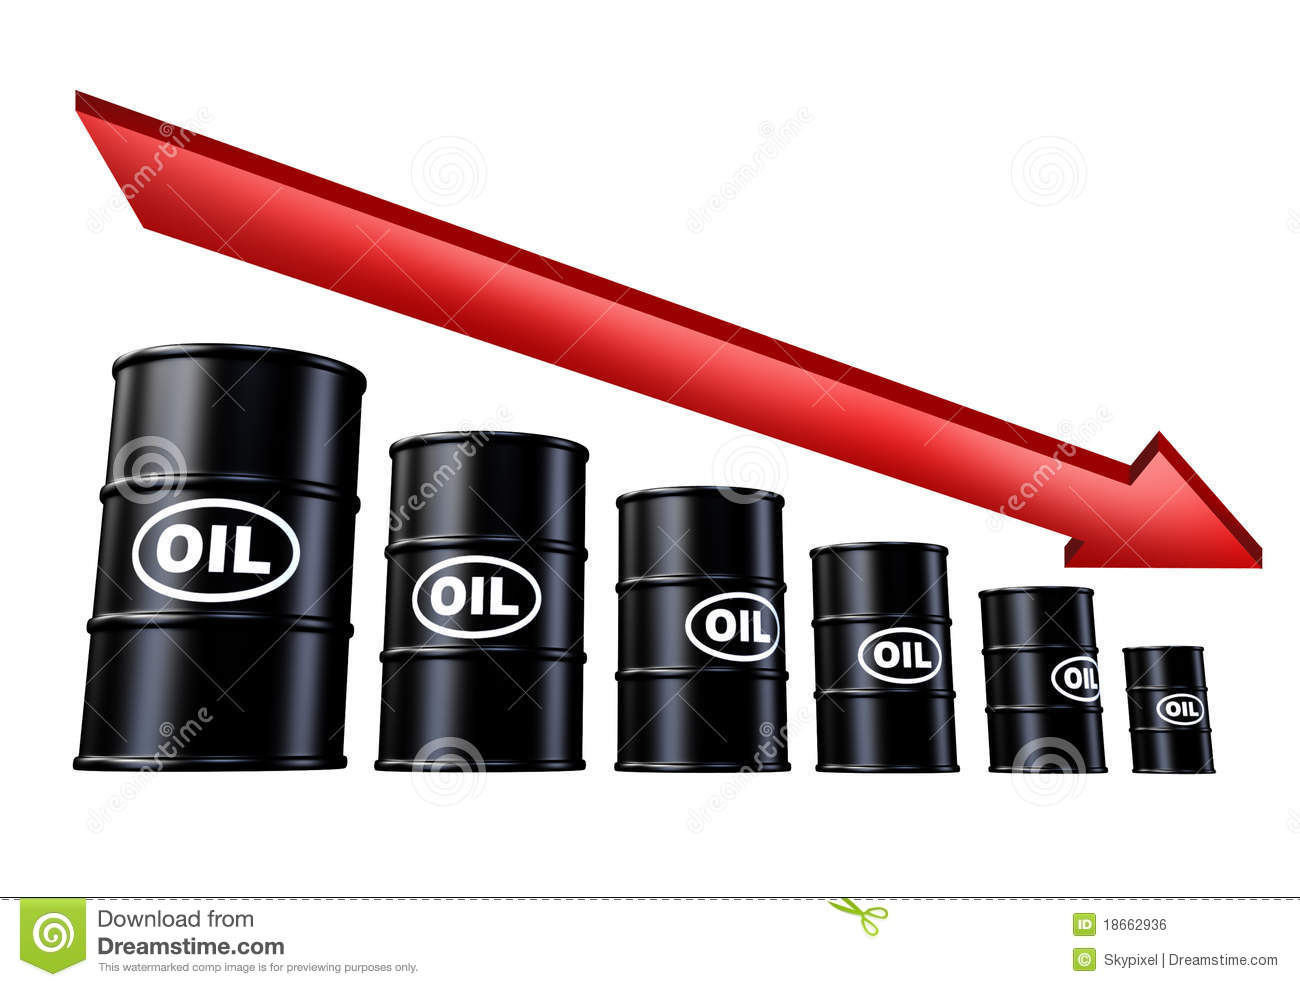 Oil and gas price decline